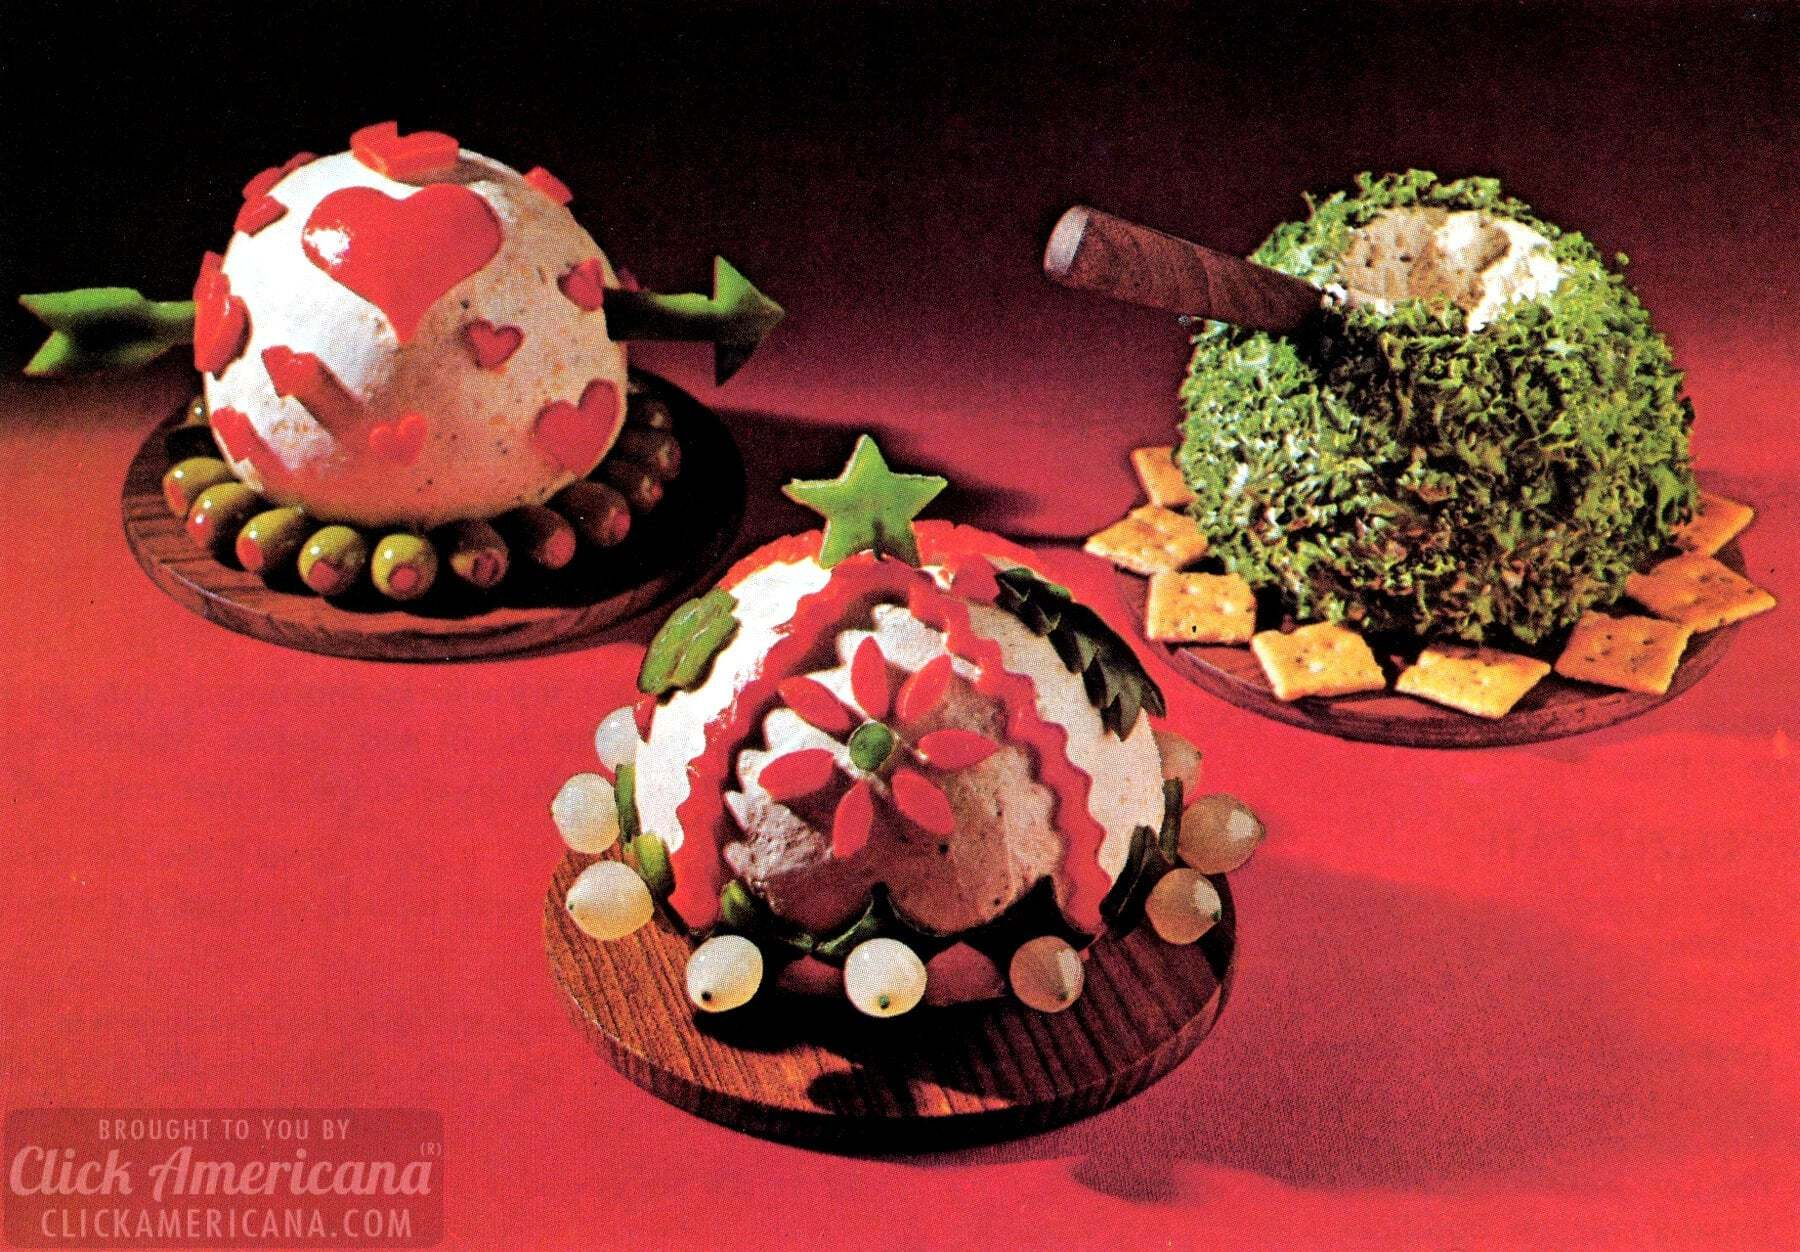 Retro Party Food 12 Classic Cheese Ball Recipes From The